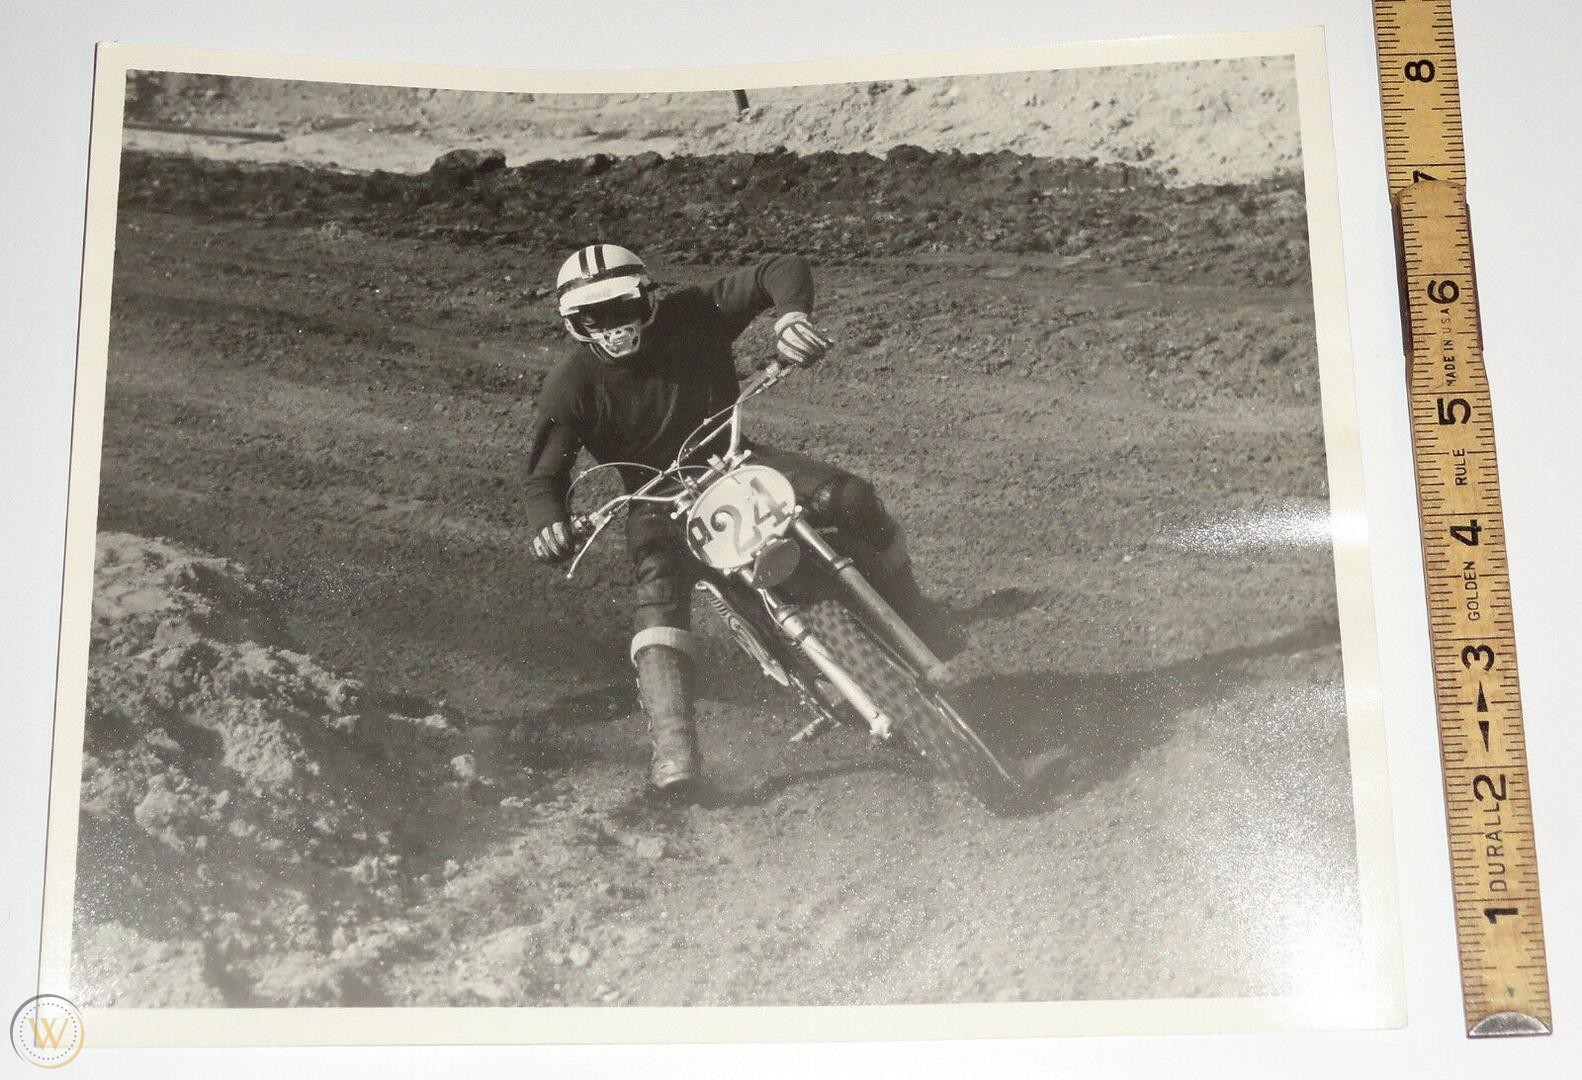 """Steve McQueen on the iconic 1971 Husqvarna 400 Cross, used by Steve McQueen in the movie hit, """"On Any Sunday"""""""